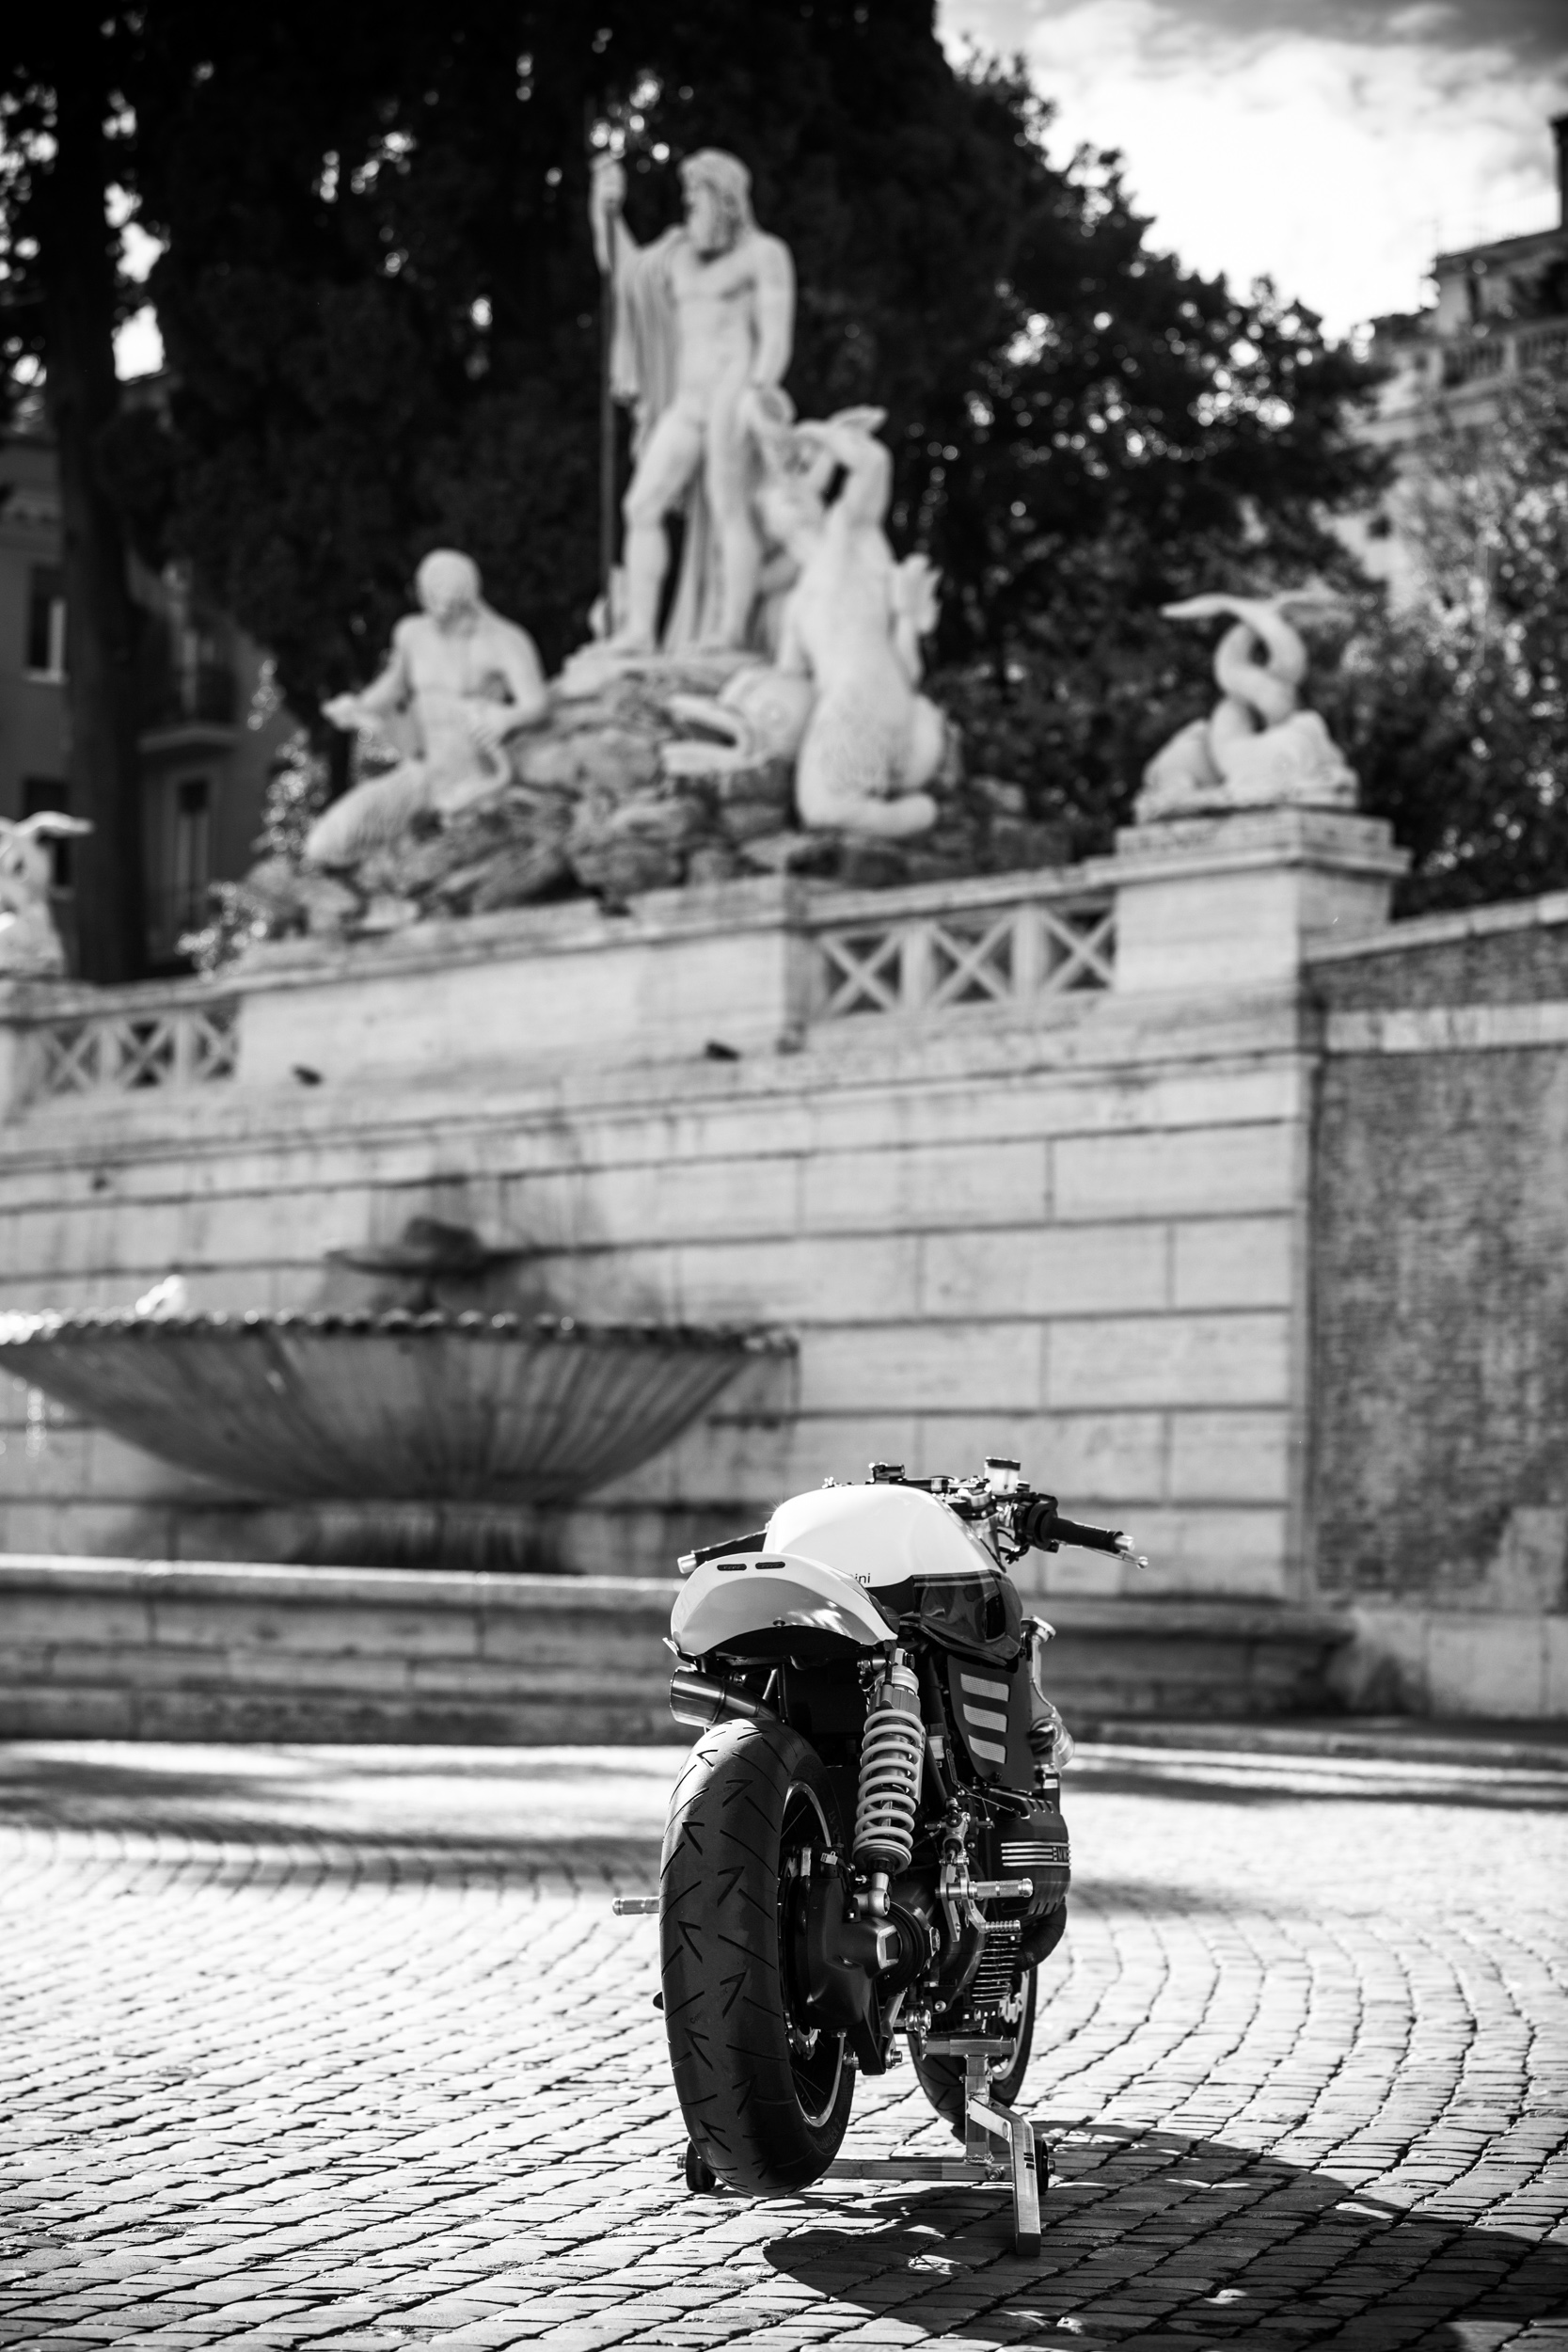 Grayscale Photography of Motorcycle Near Statues